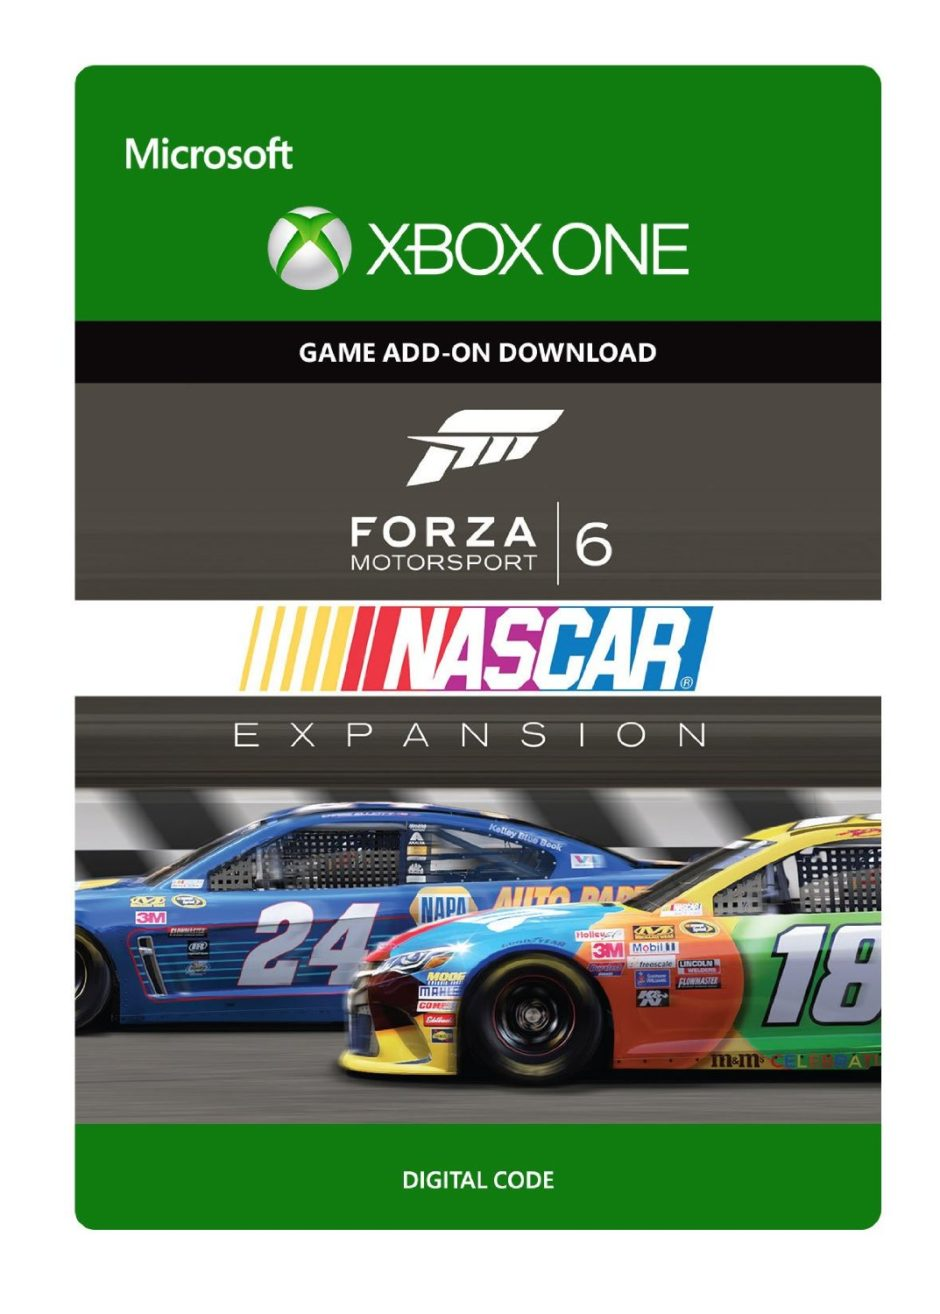 Nascar Games For Xbox 1 : Forza motorsport nascar expansion xbox one racing